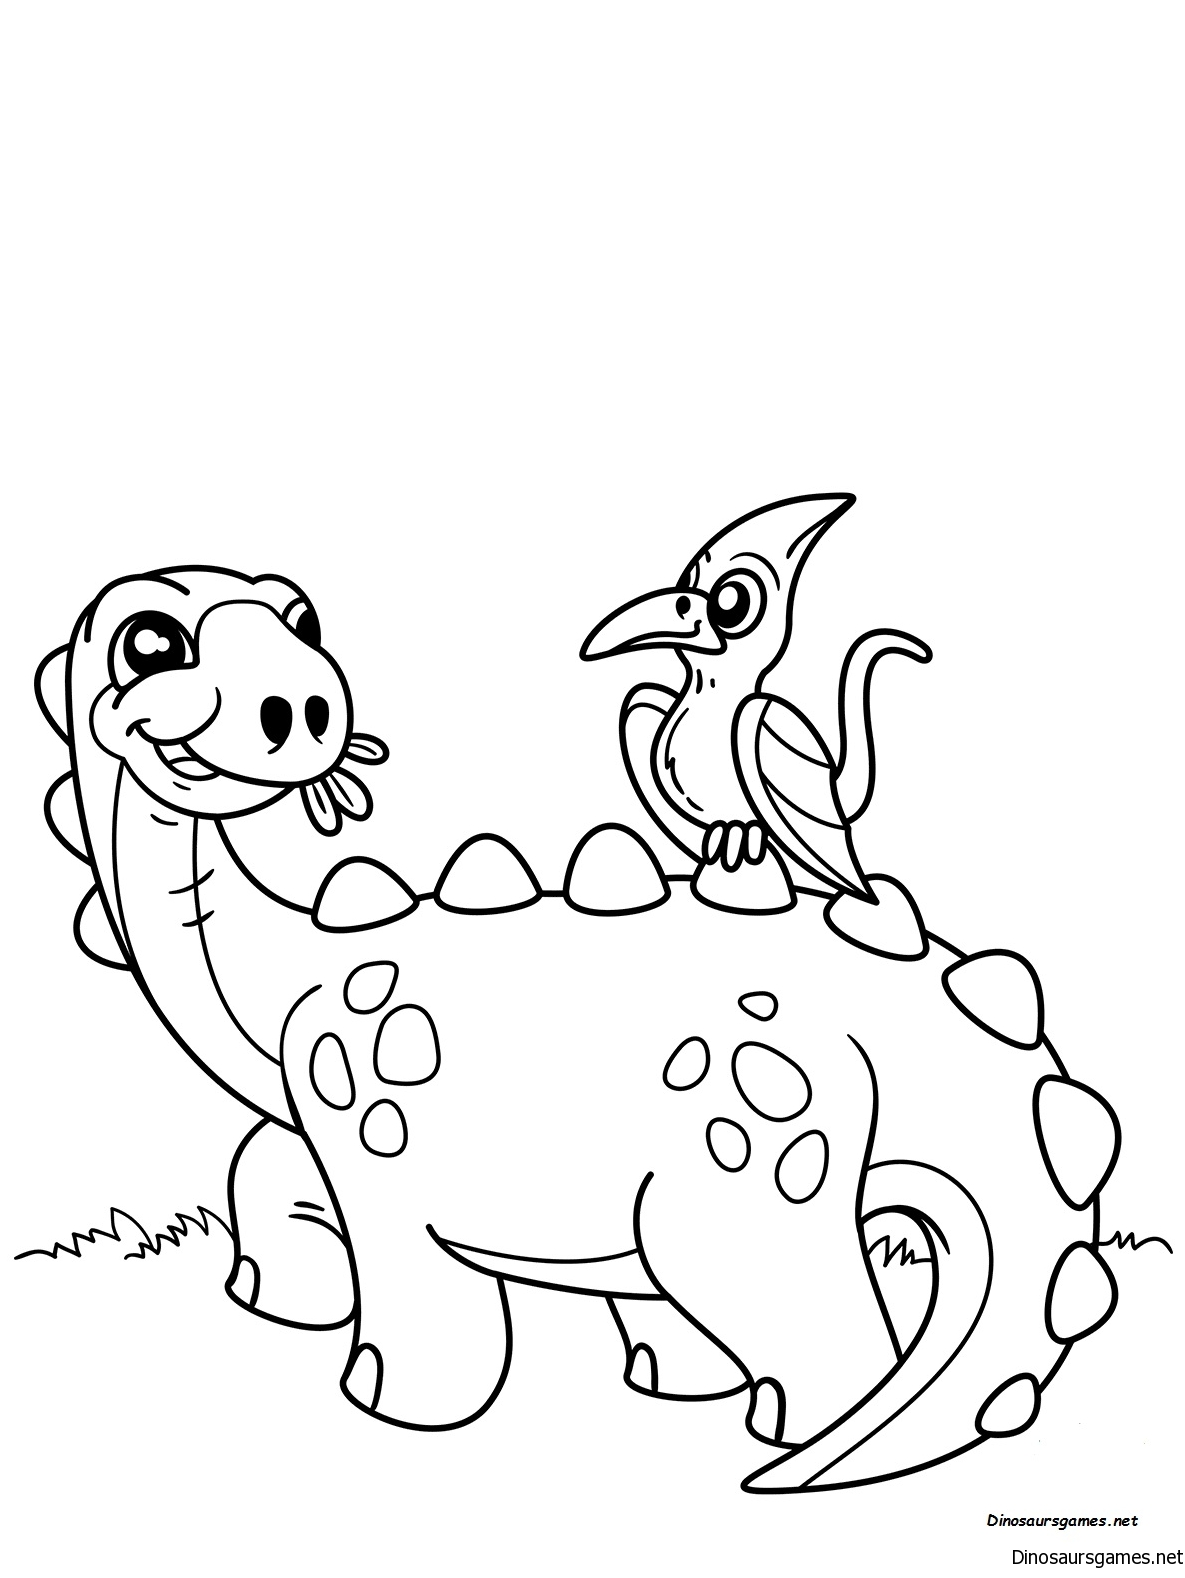 Cute Dinosaur with Pteranodon Coloring Page